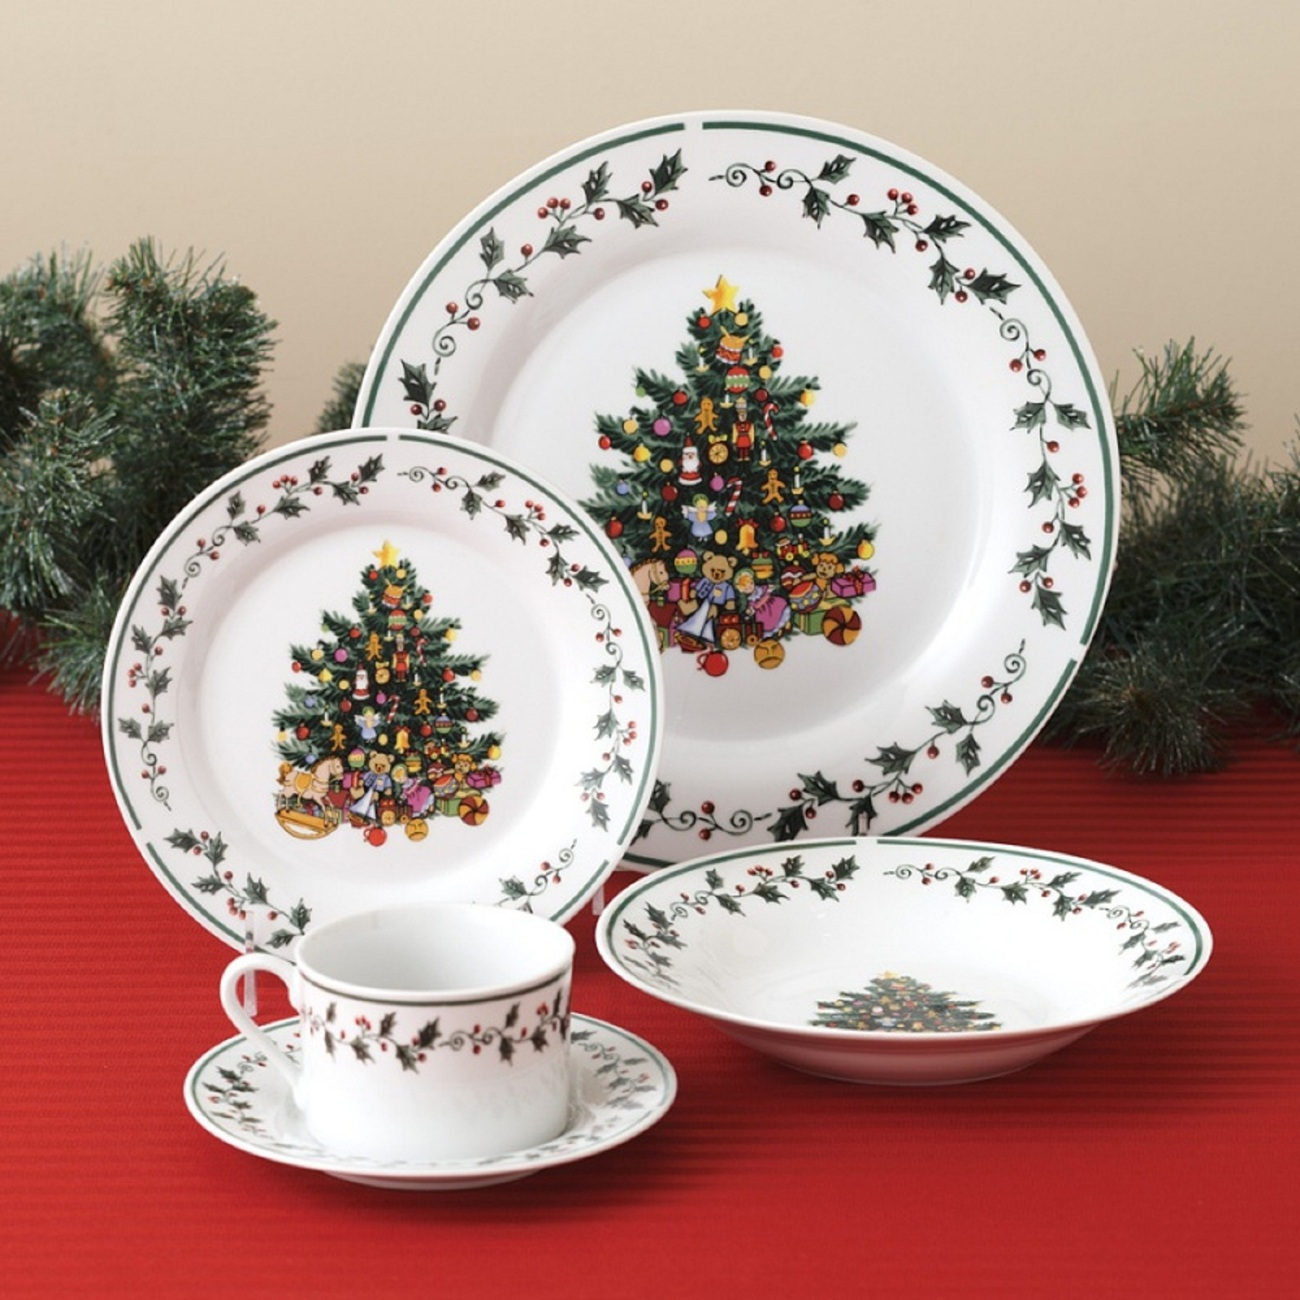 Primary image for Christmas  Holidays Tree Trimmings Holly  20 Piece Porcelain Dinnerware  Set Ser